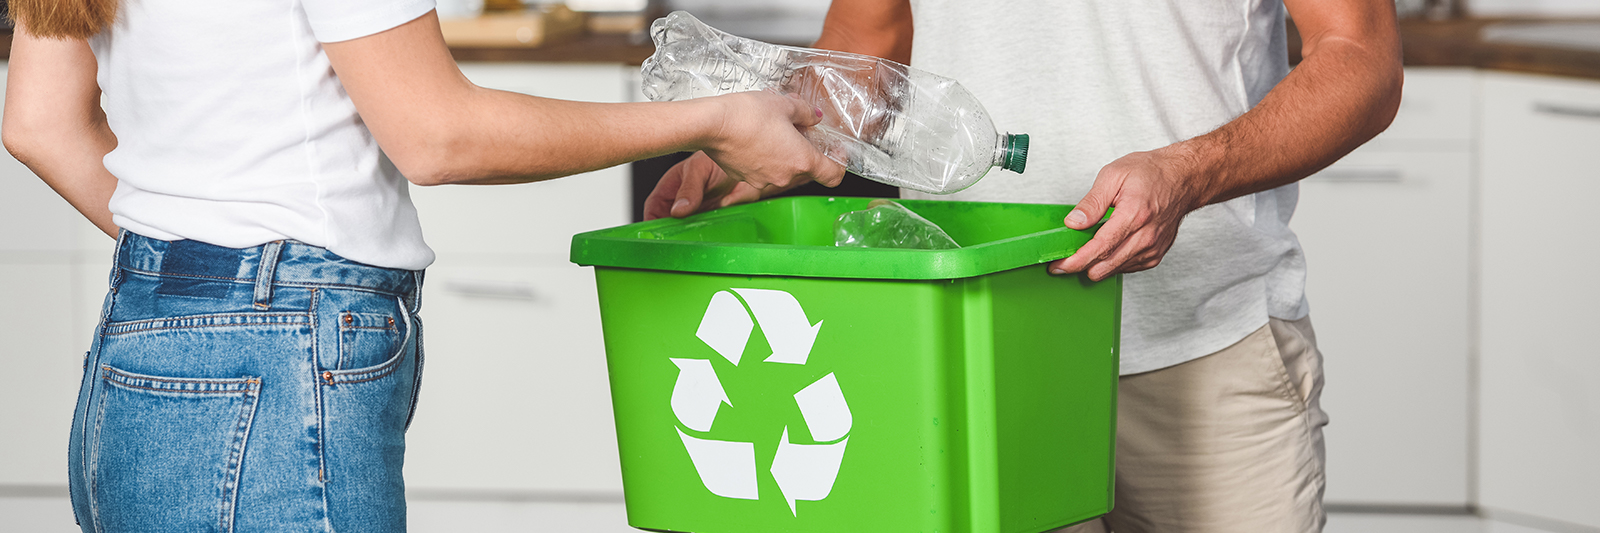 How to Make Your Home More Eco Friendly